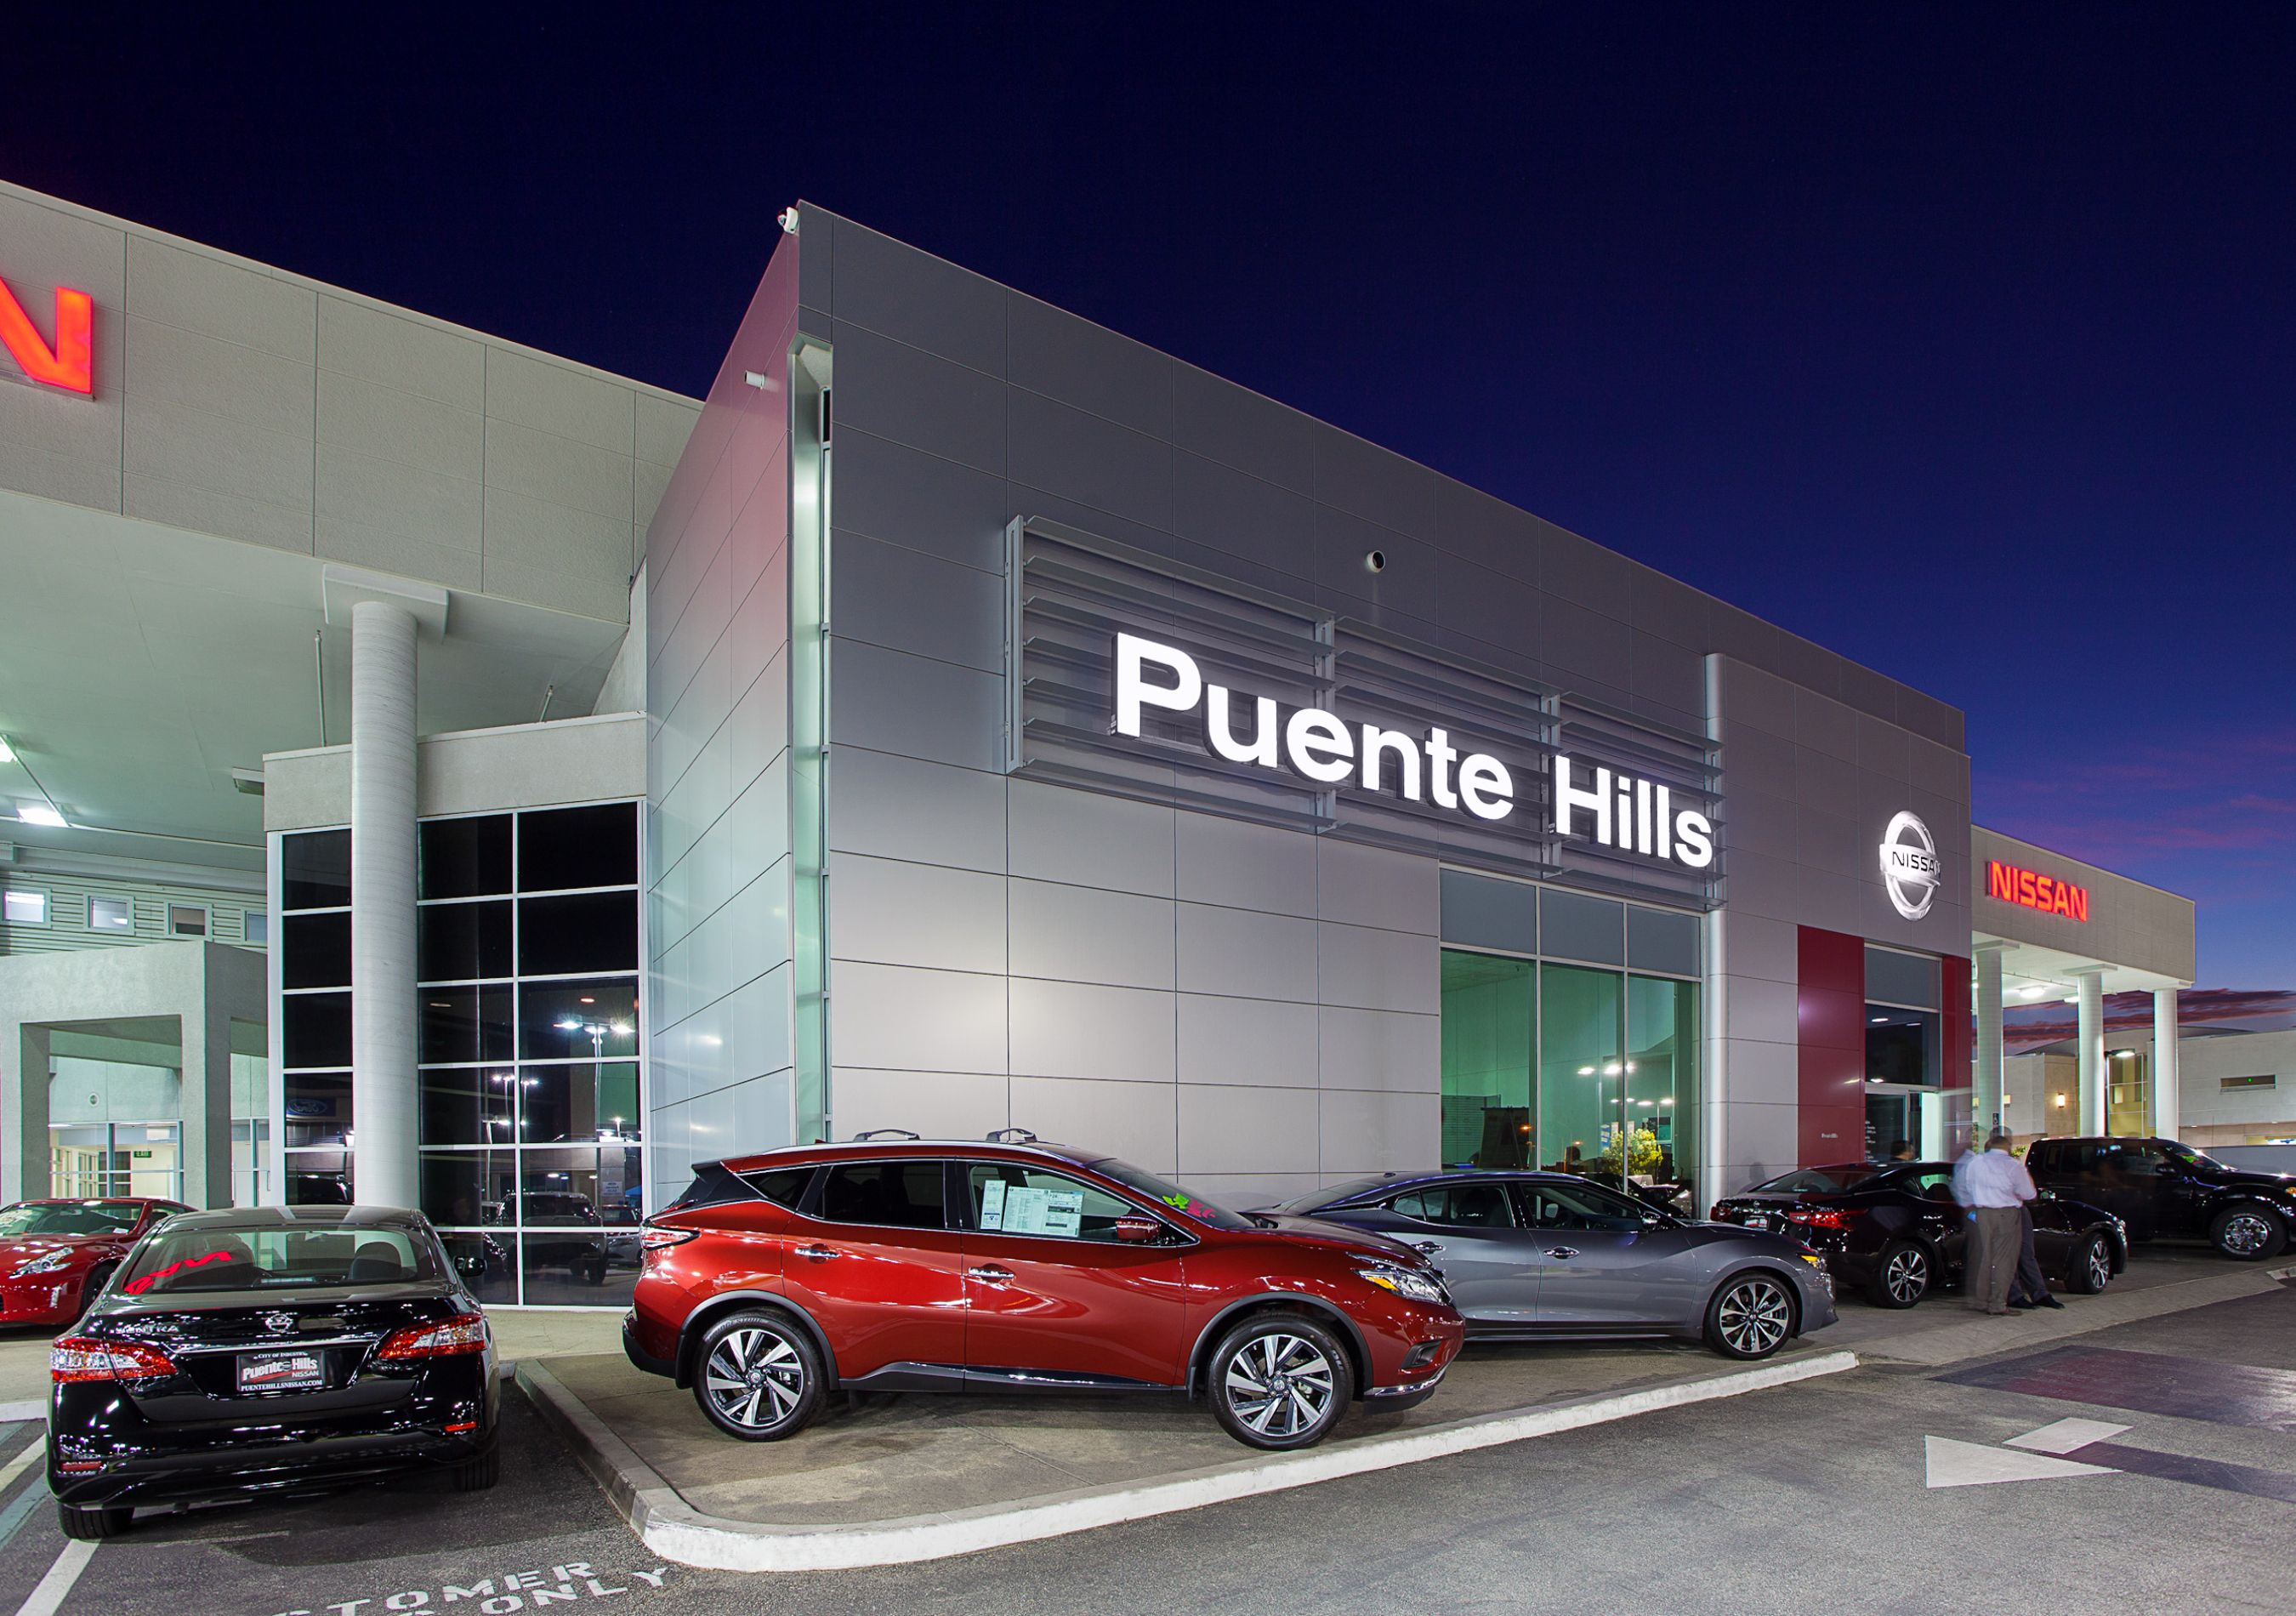 puente hills nissan rowland heights ca yp